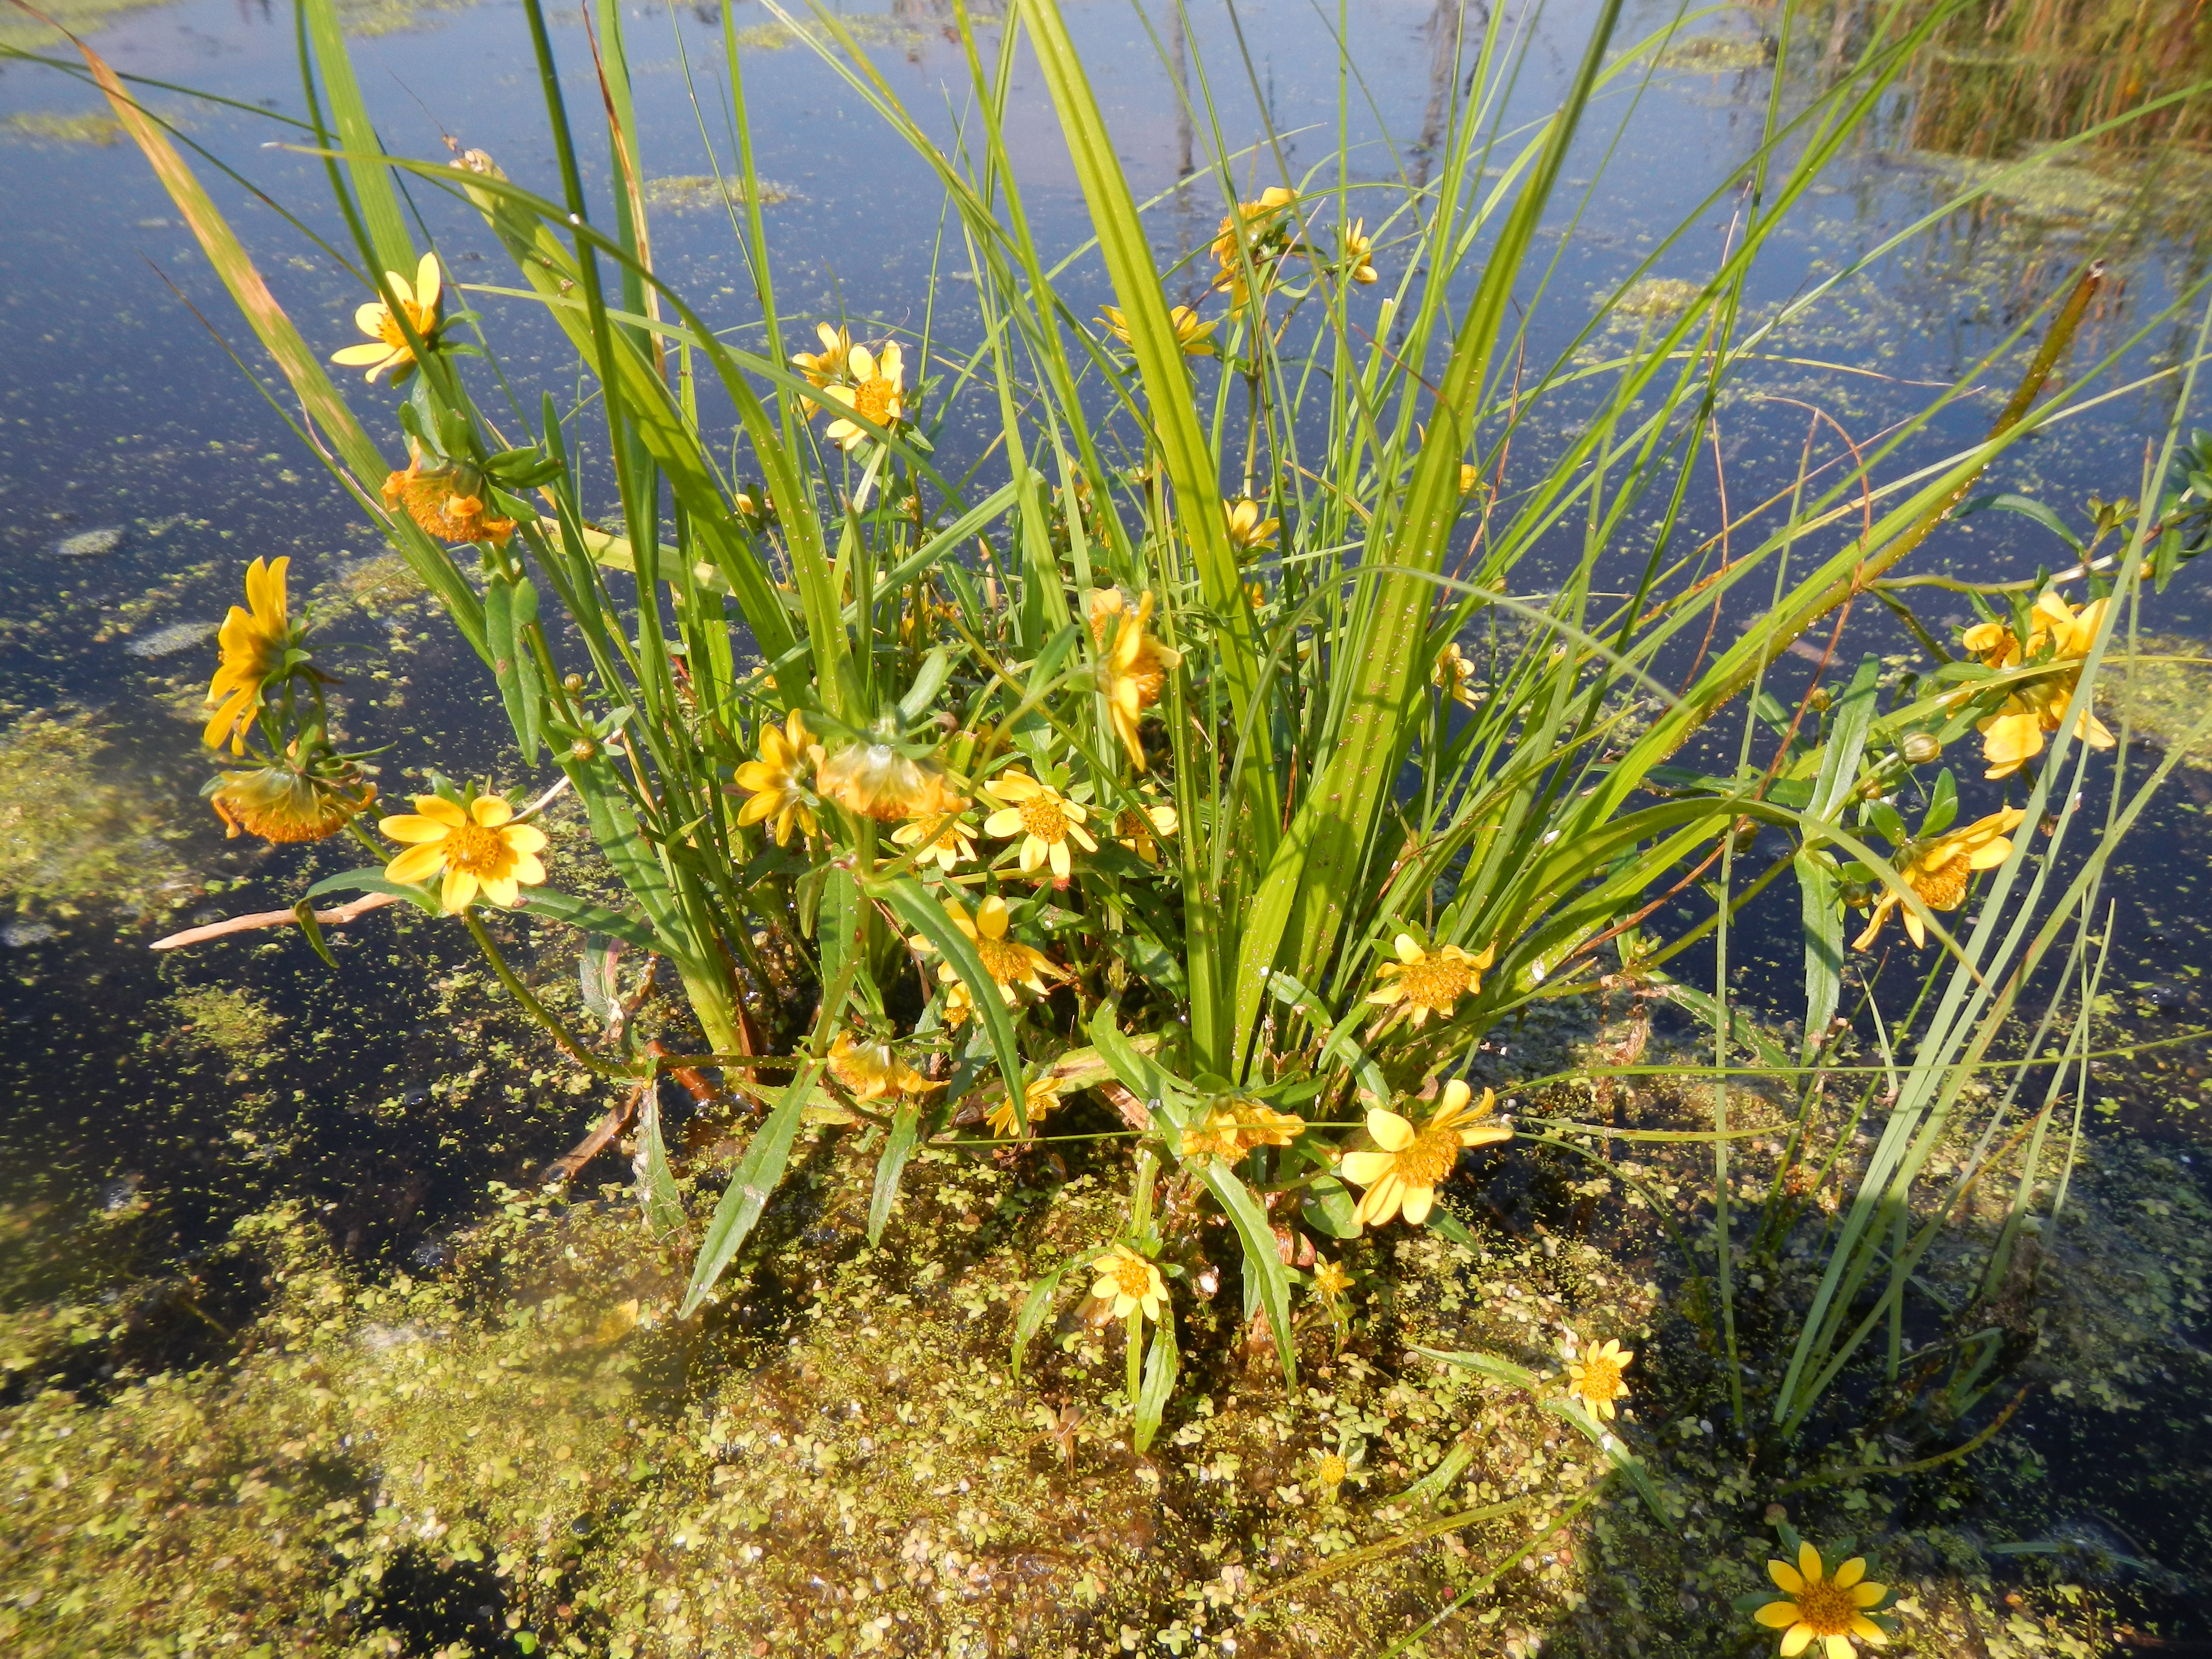 Wildflower bouquet in the middle of the marshlands (Bidens sp., possibly beckii?)